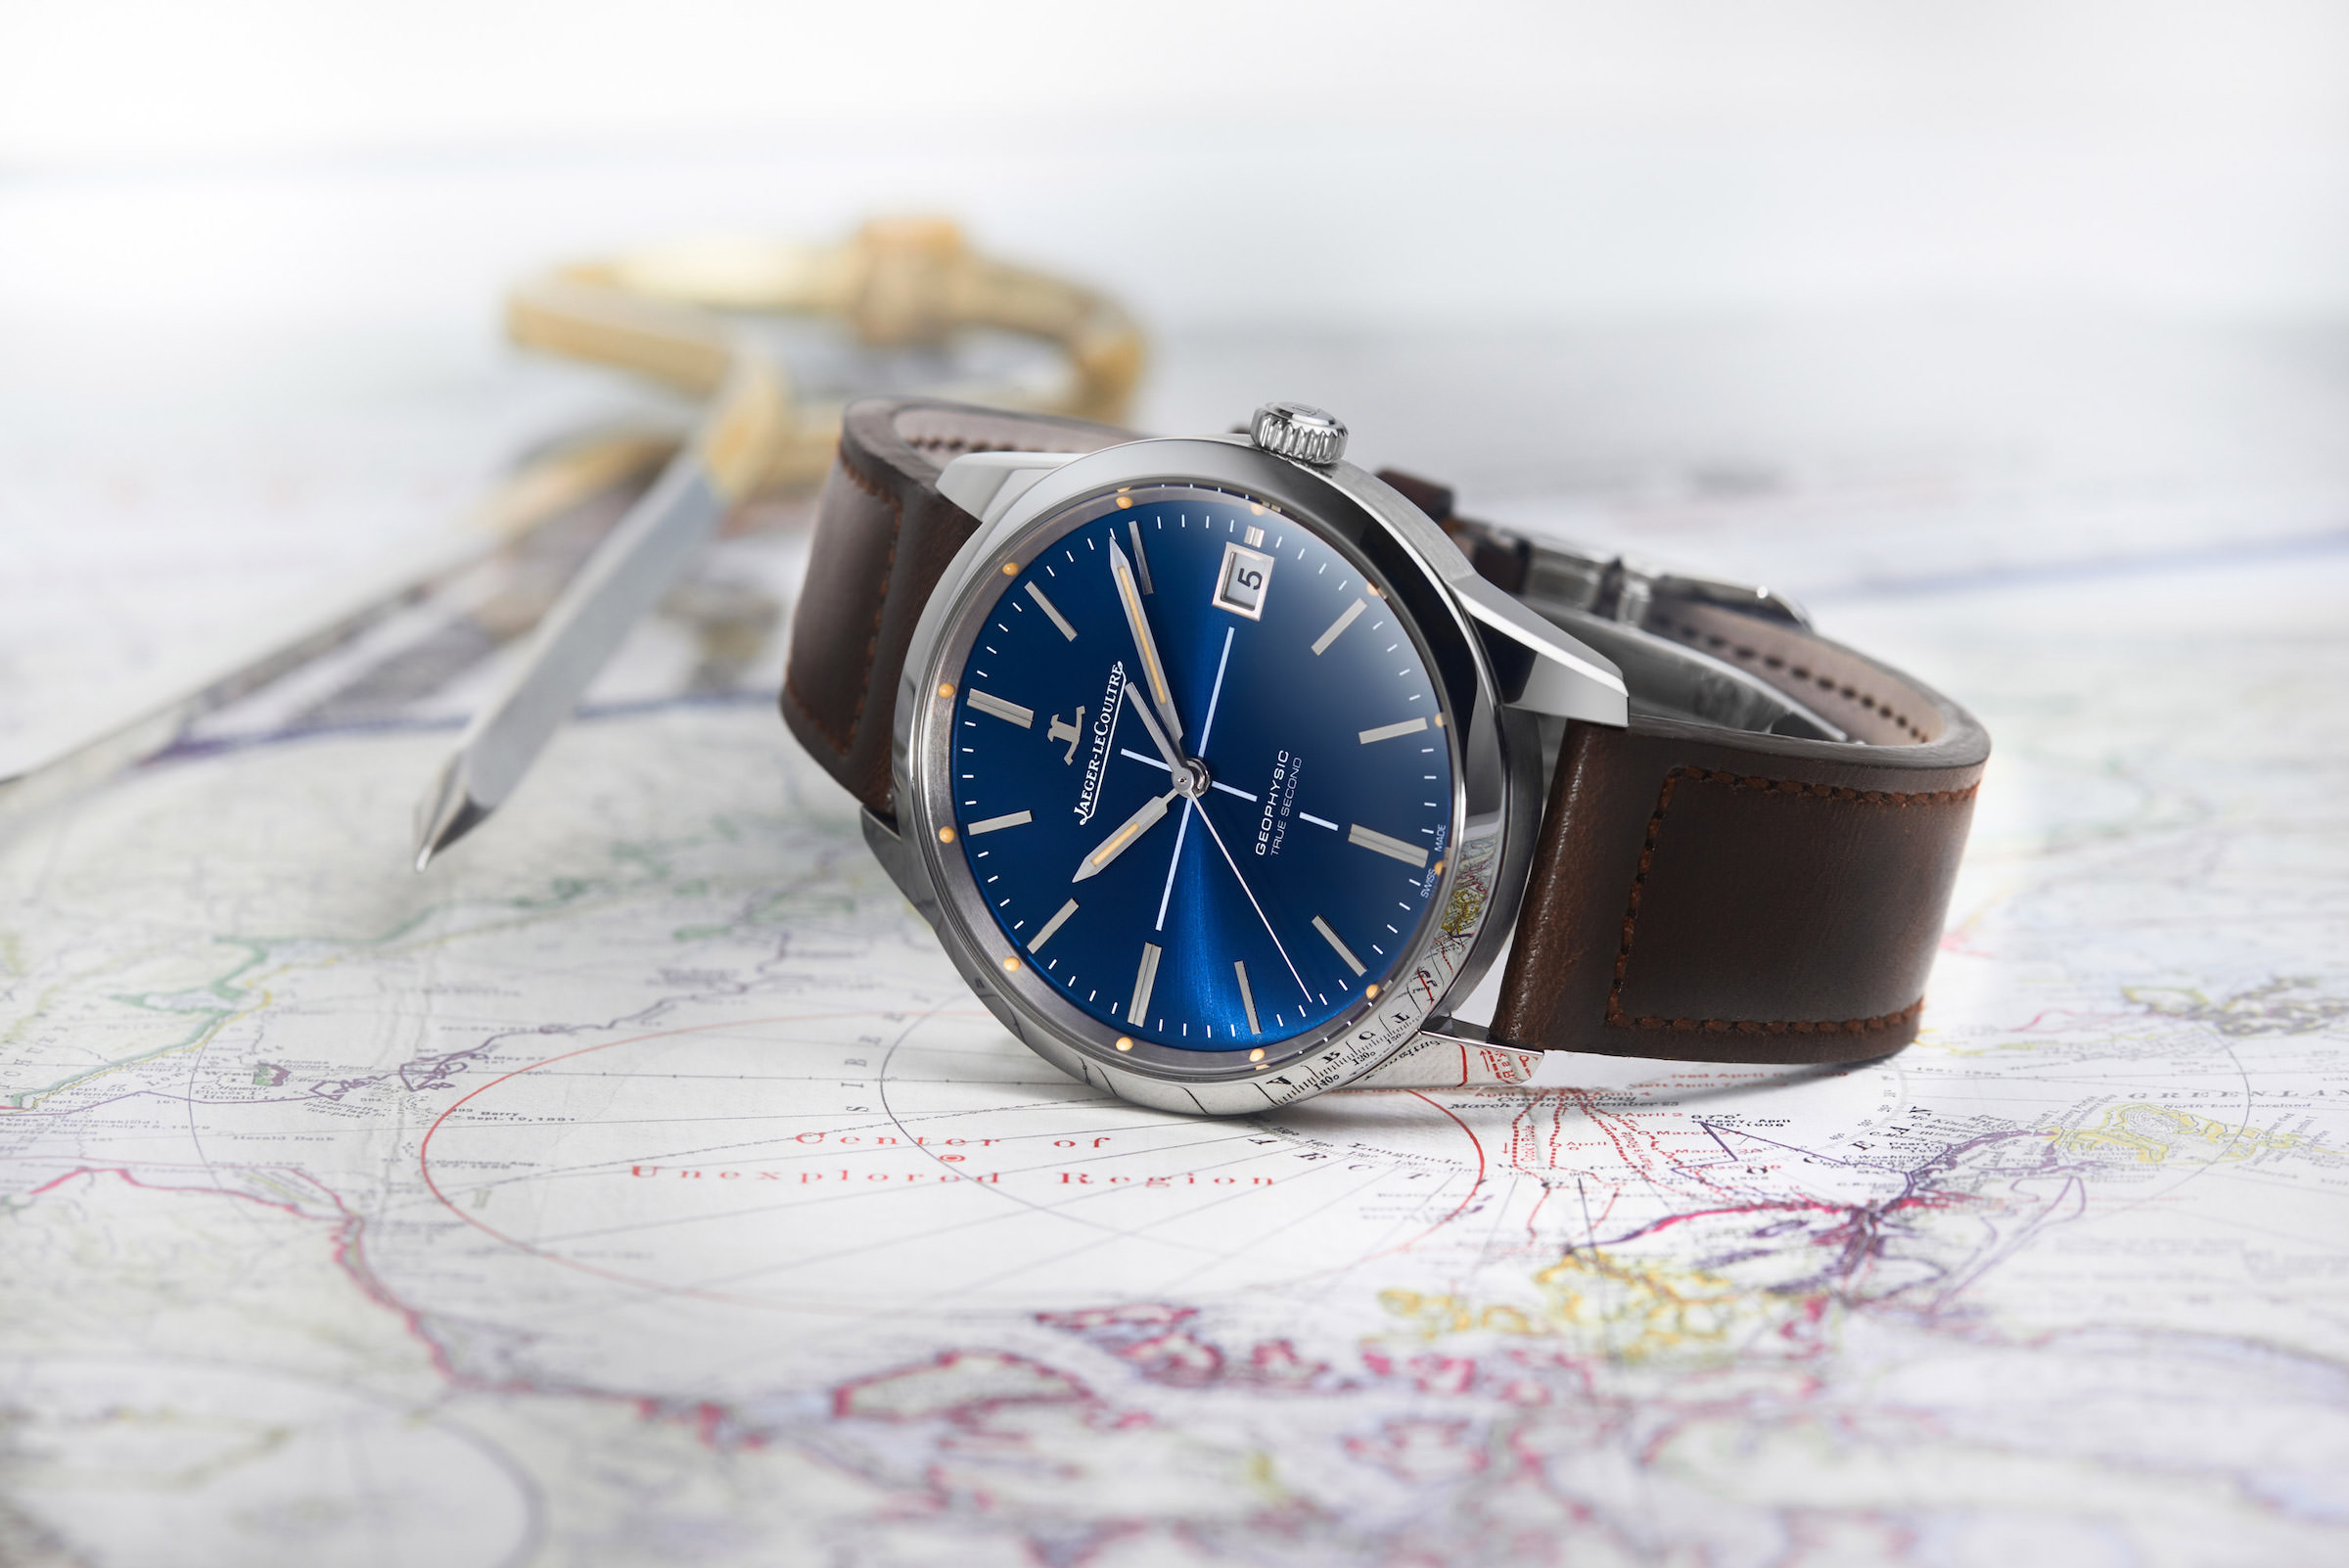 Die Jaeger-LeCoultre Geophysic Limited Edition